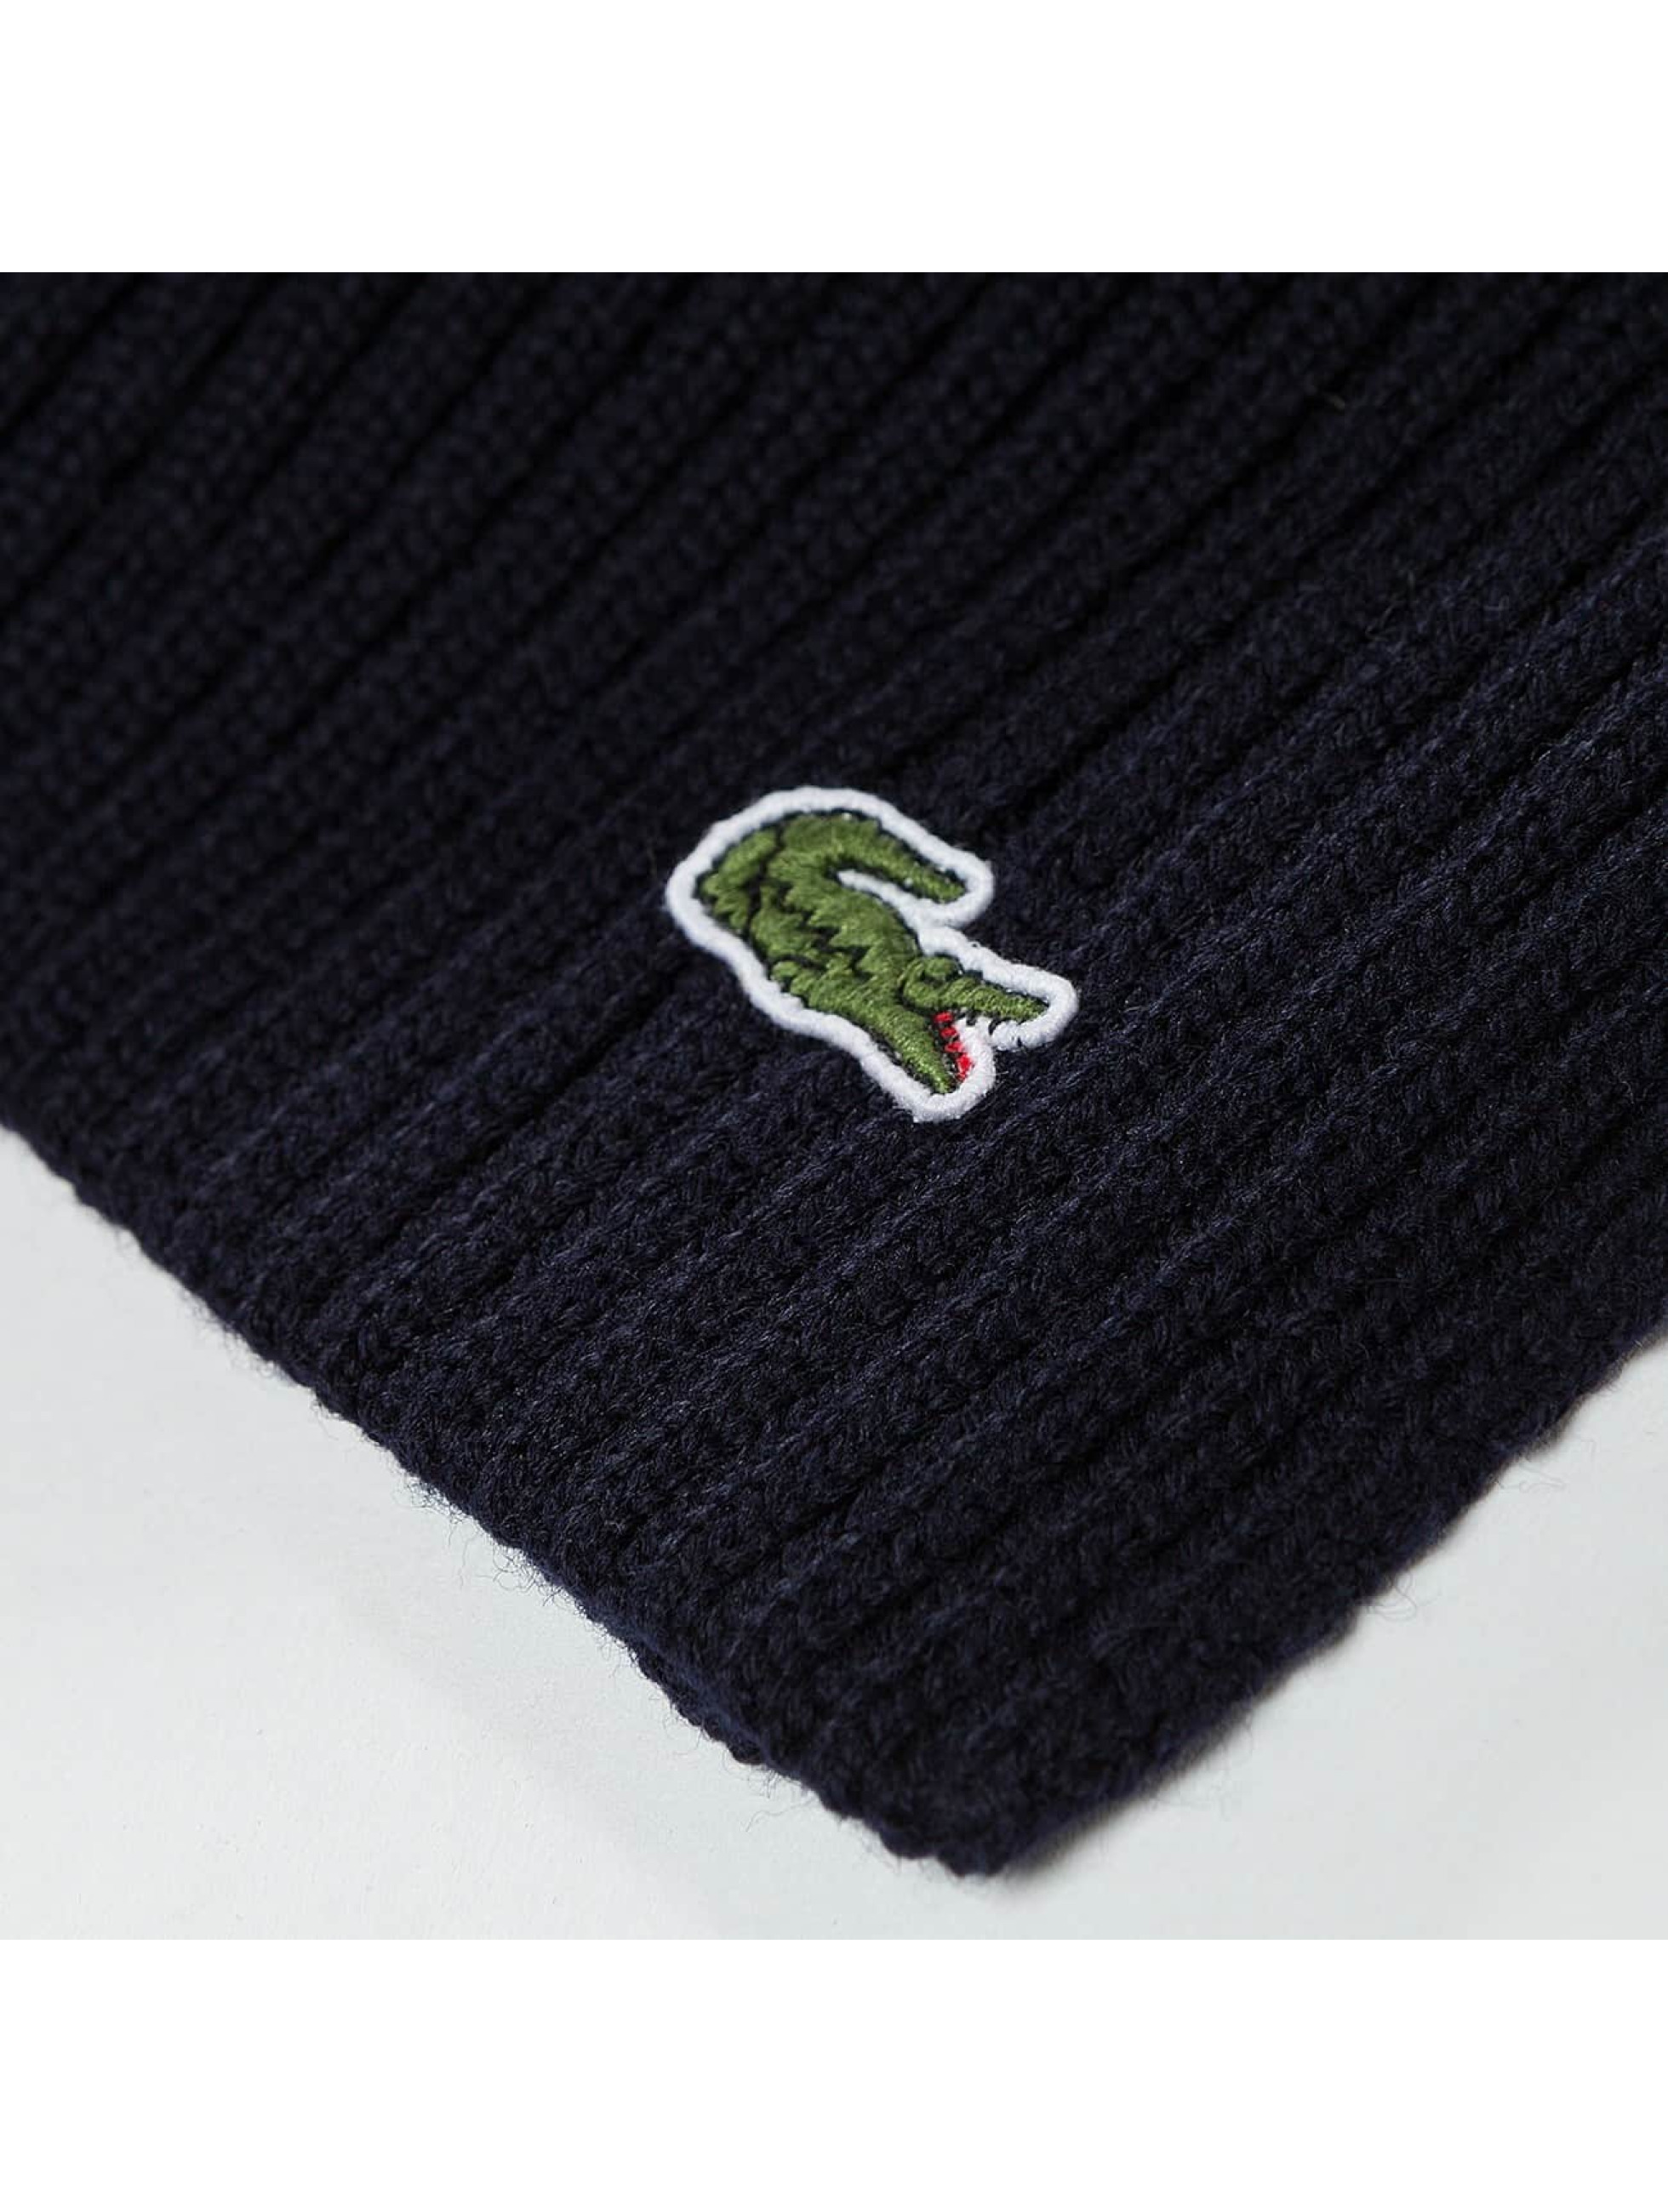 Lacoste Schal Knitted blau